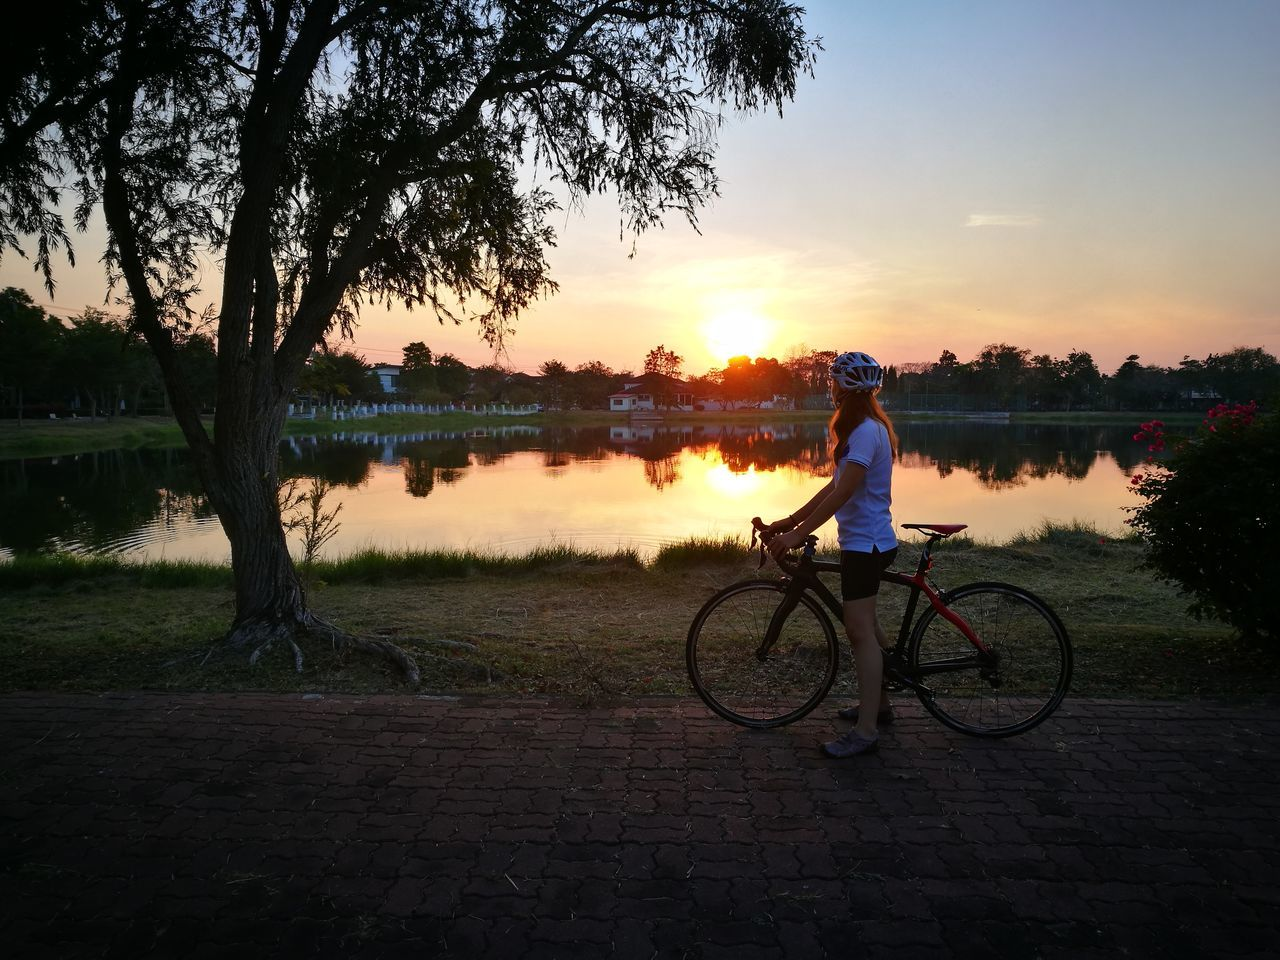 bicycle, sunset, tree, cycling, transportation, one person, full length, outdoors, sky, real people, nature, silhouette, water, mode of transport, lake, land vehicle, men, cycling helmet, bmx cycling, beauty in nature, grass, day, people